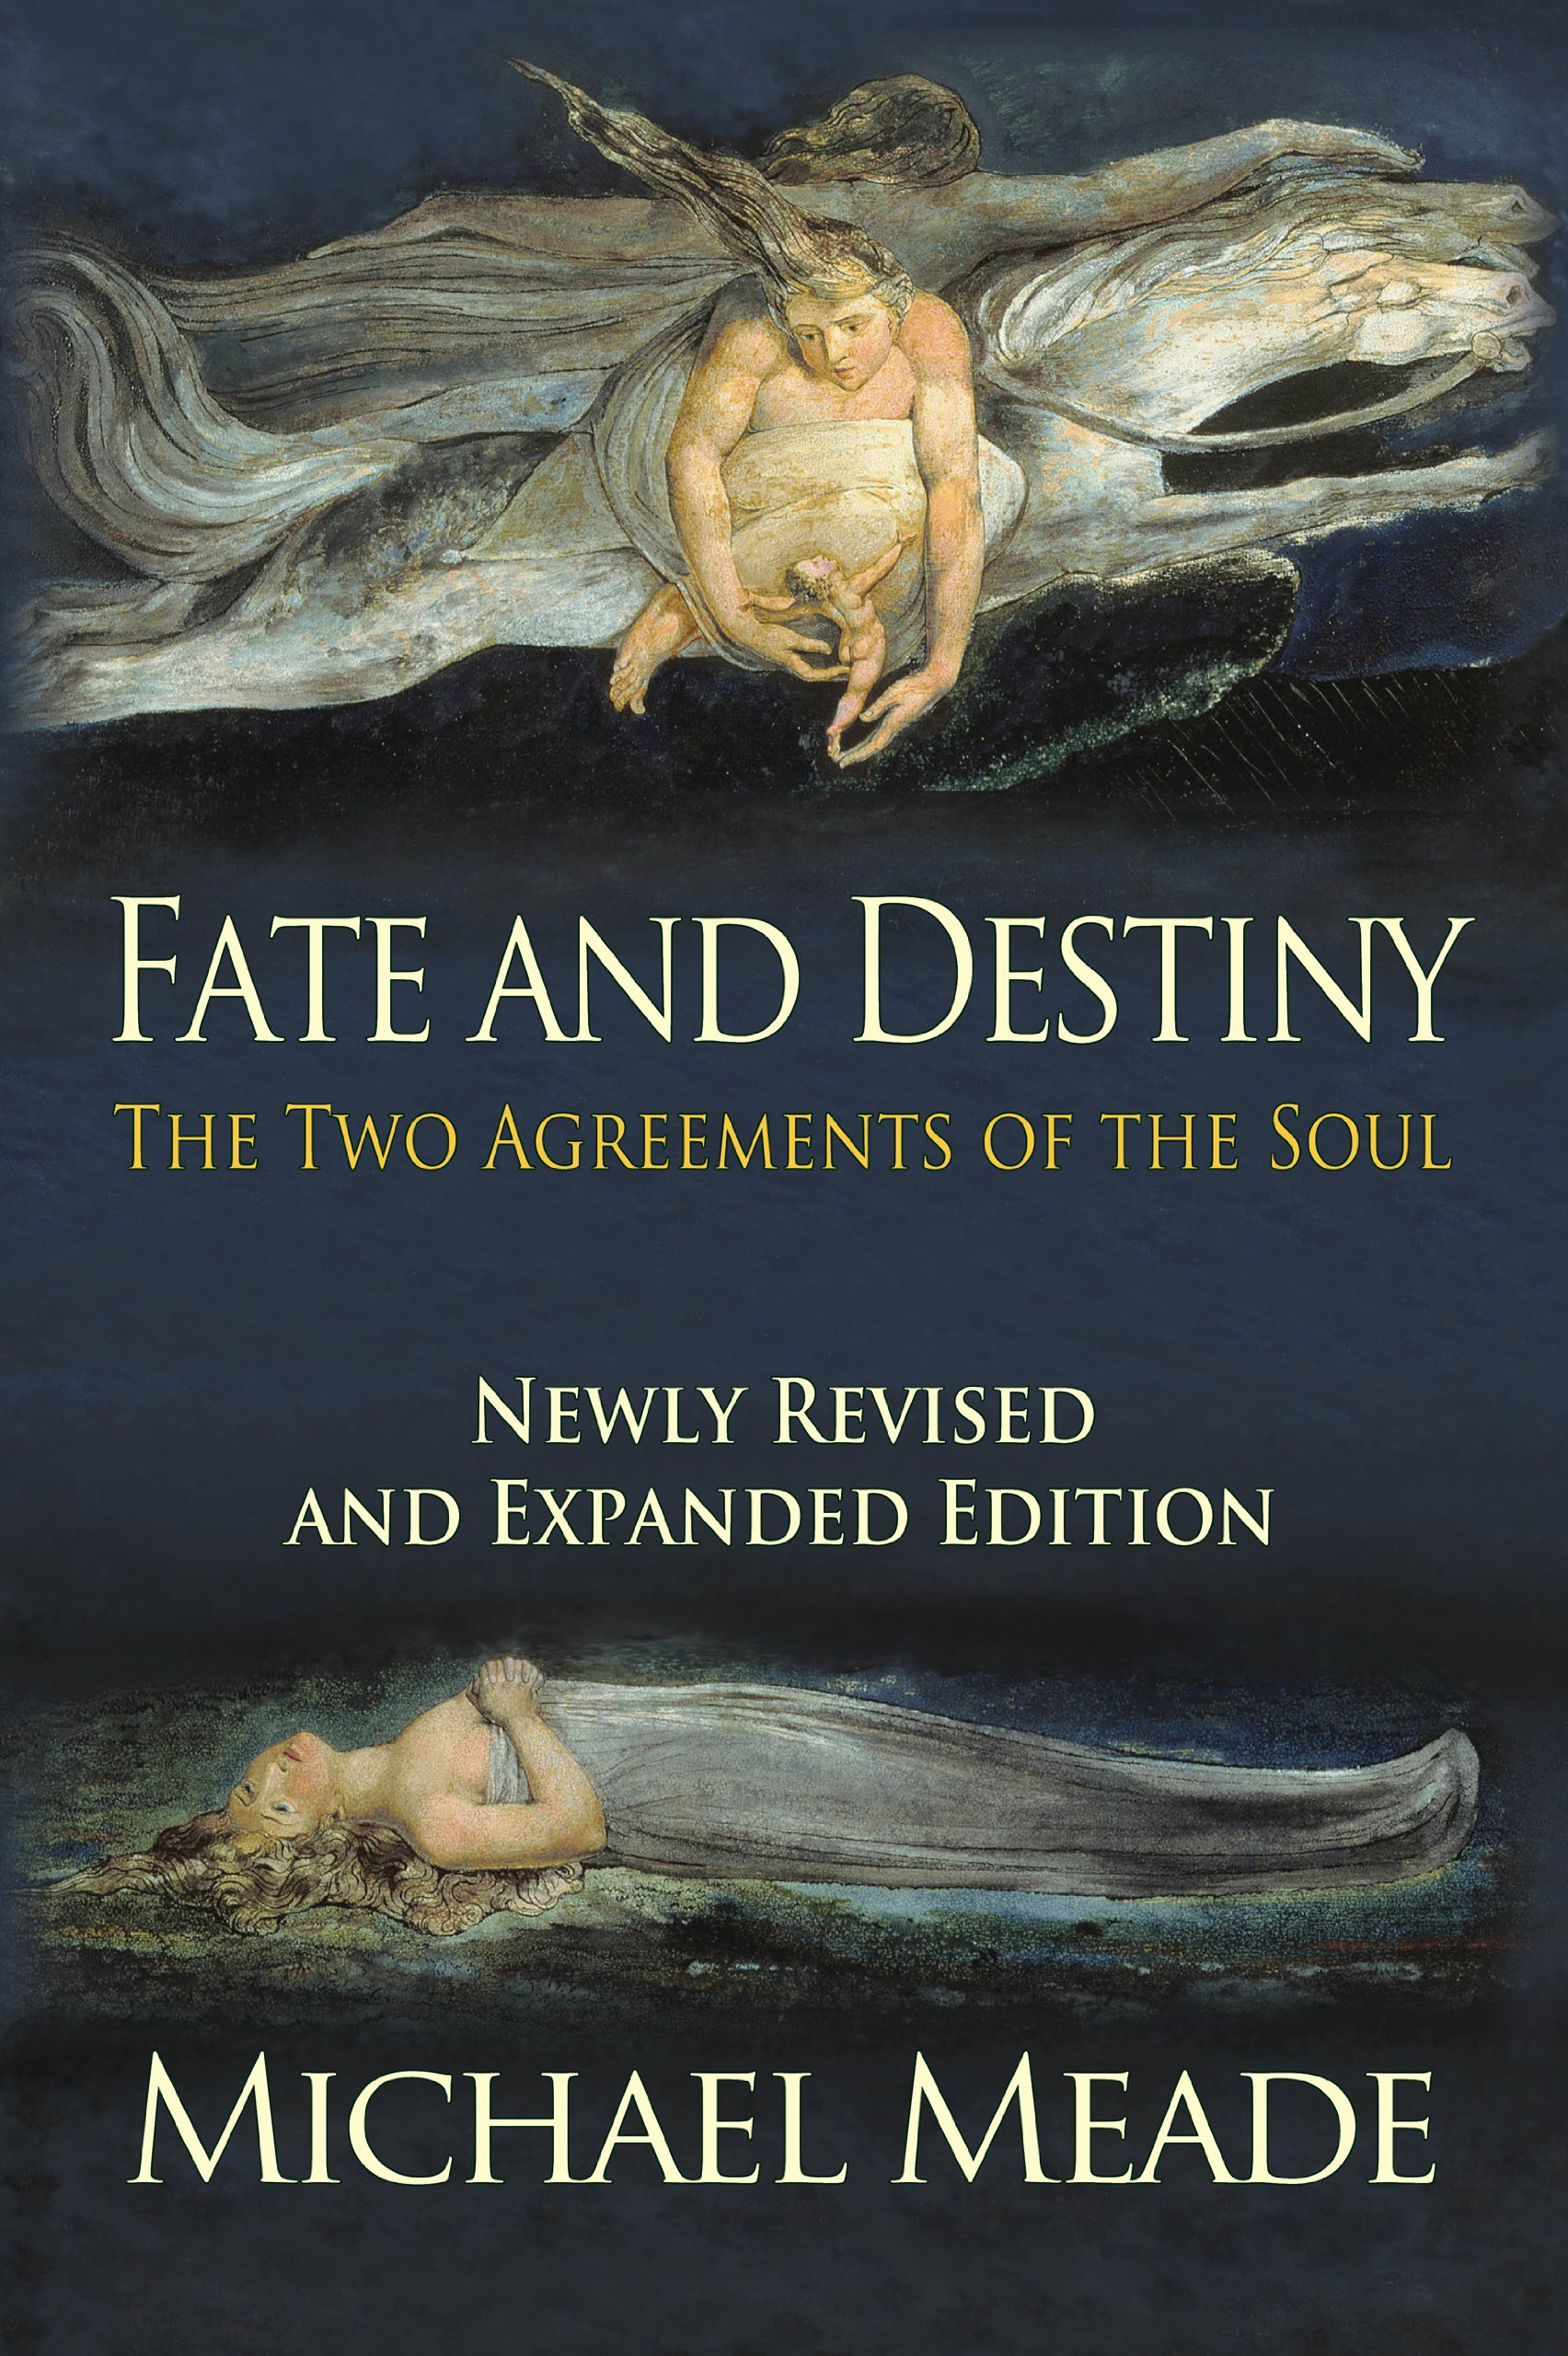 Fate and Destiny, The Two Agreements of the Soul - Newly Revised and  Expanded Edition: Michael Meade: 9780982939147: Amazon.com: Books